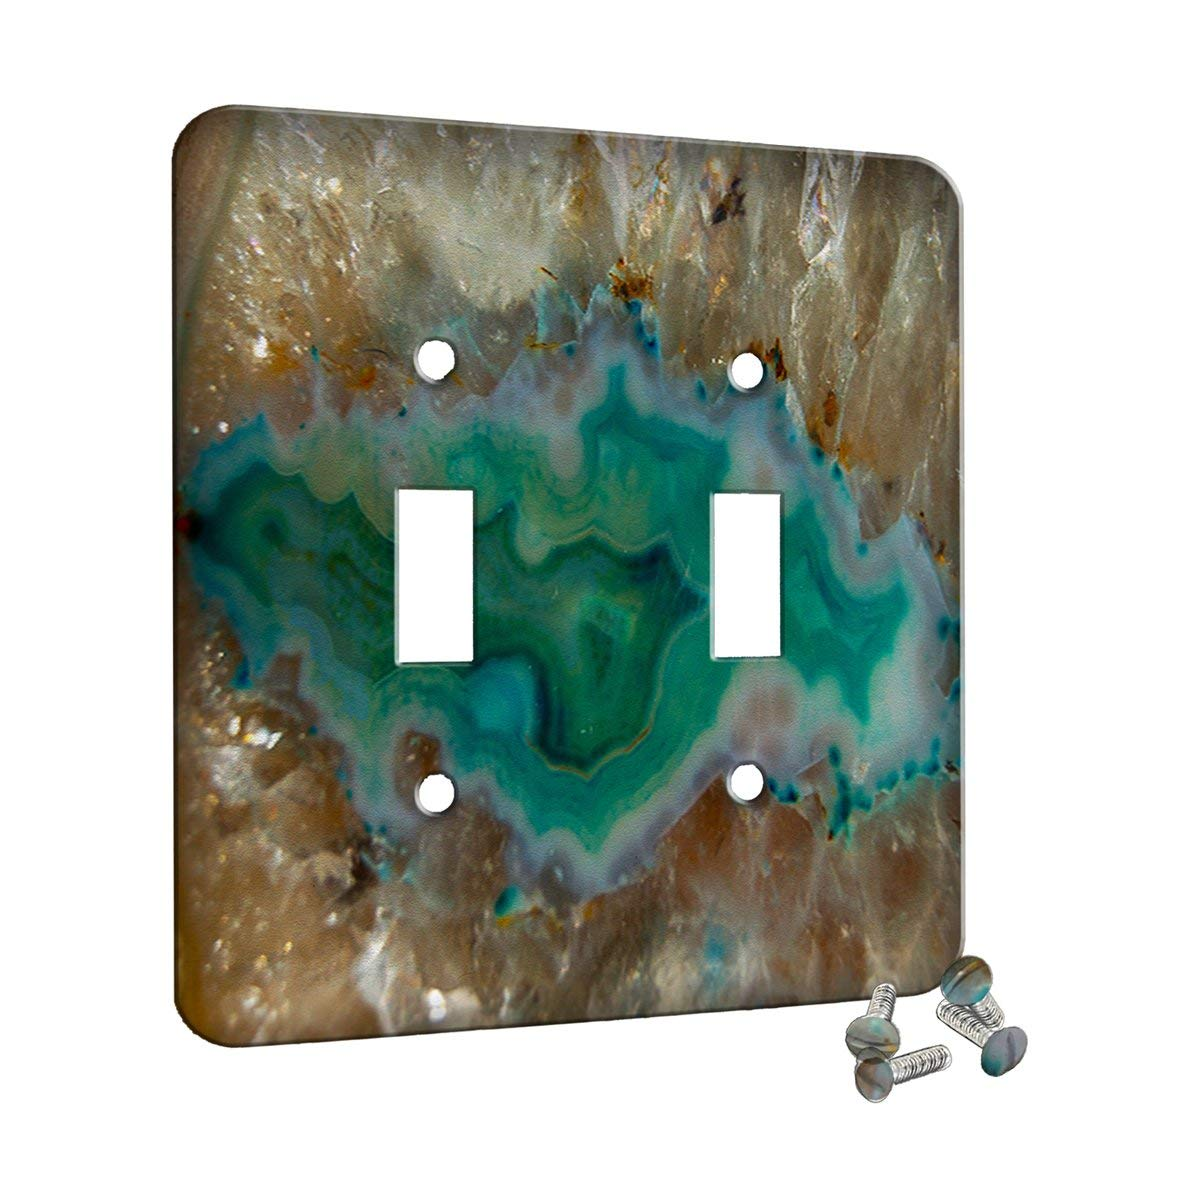 Agate Crystal Turquoise - Decor Switch Plate Cover Metal (2 Gang Switch)